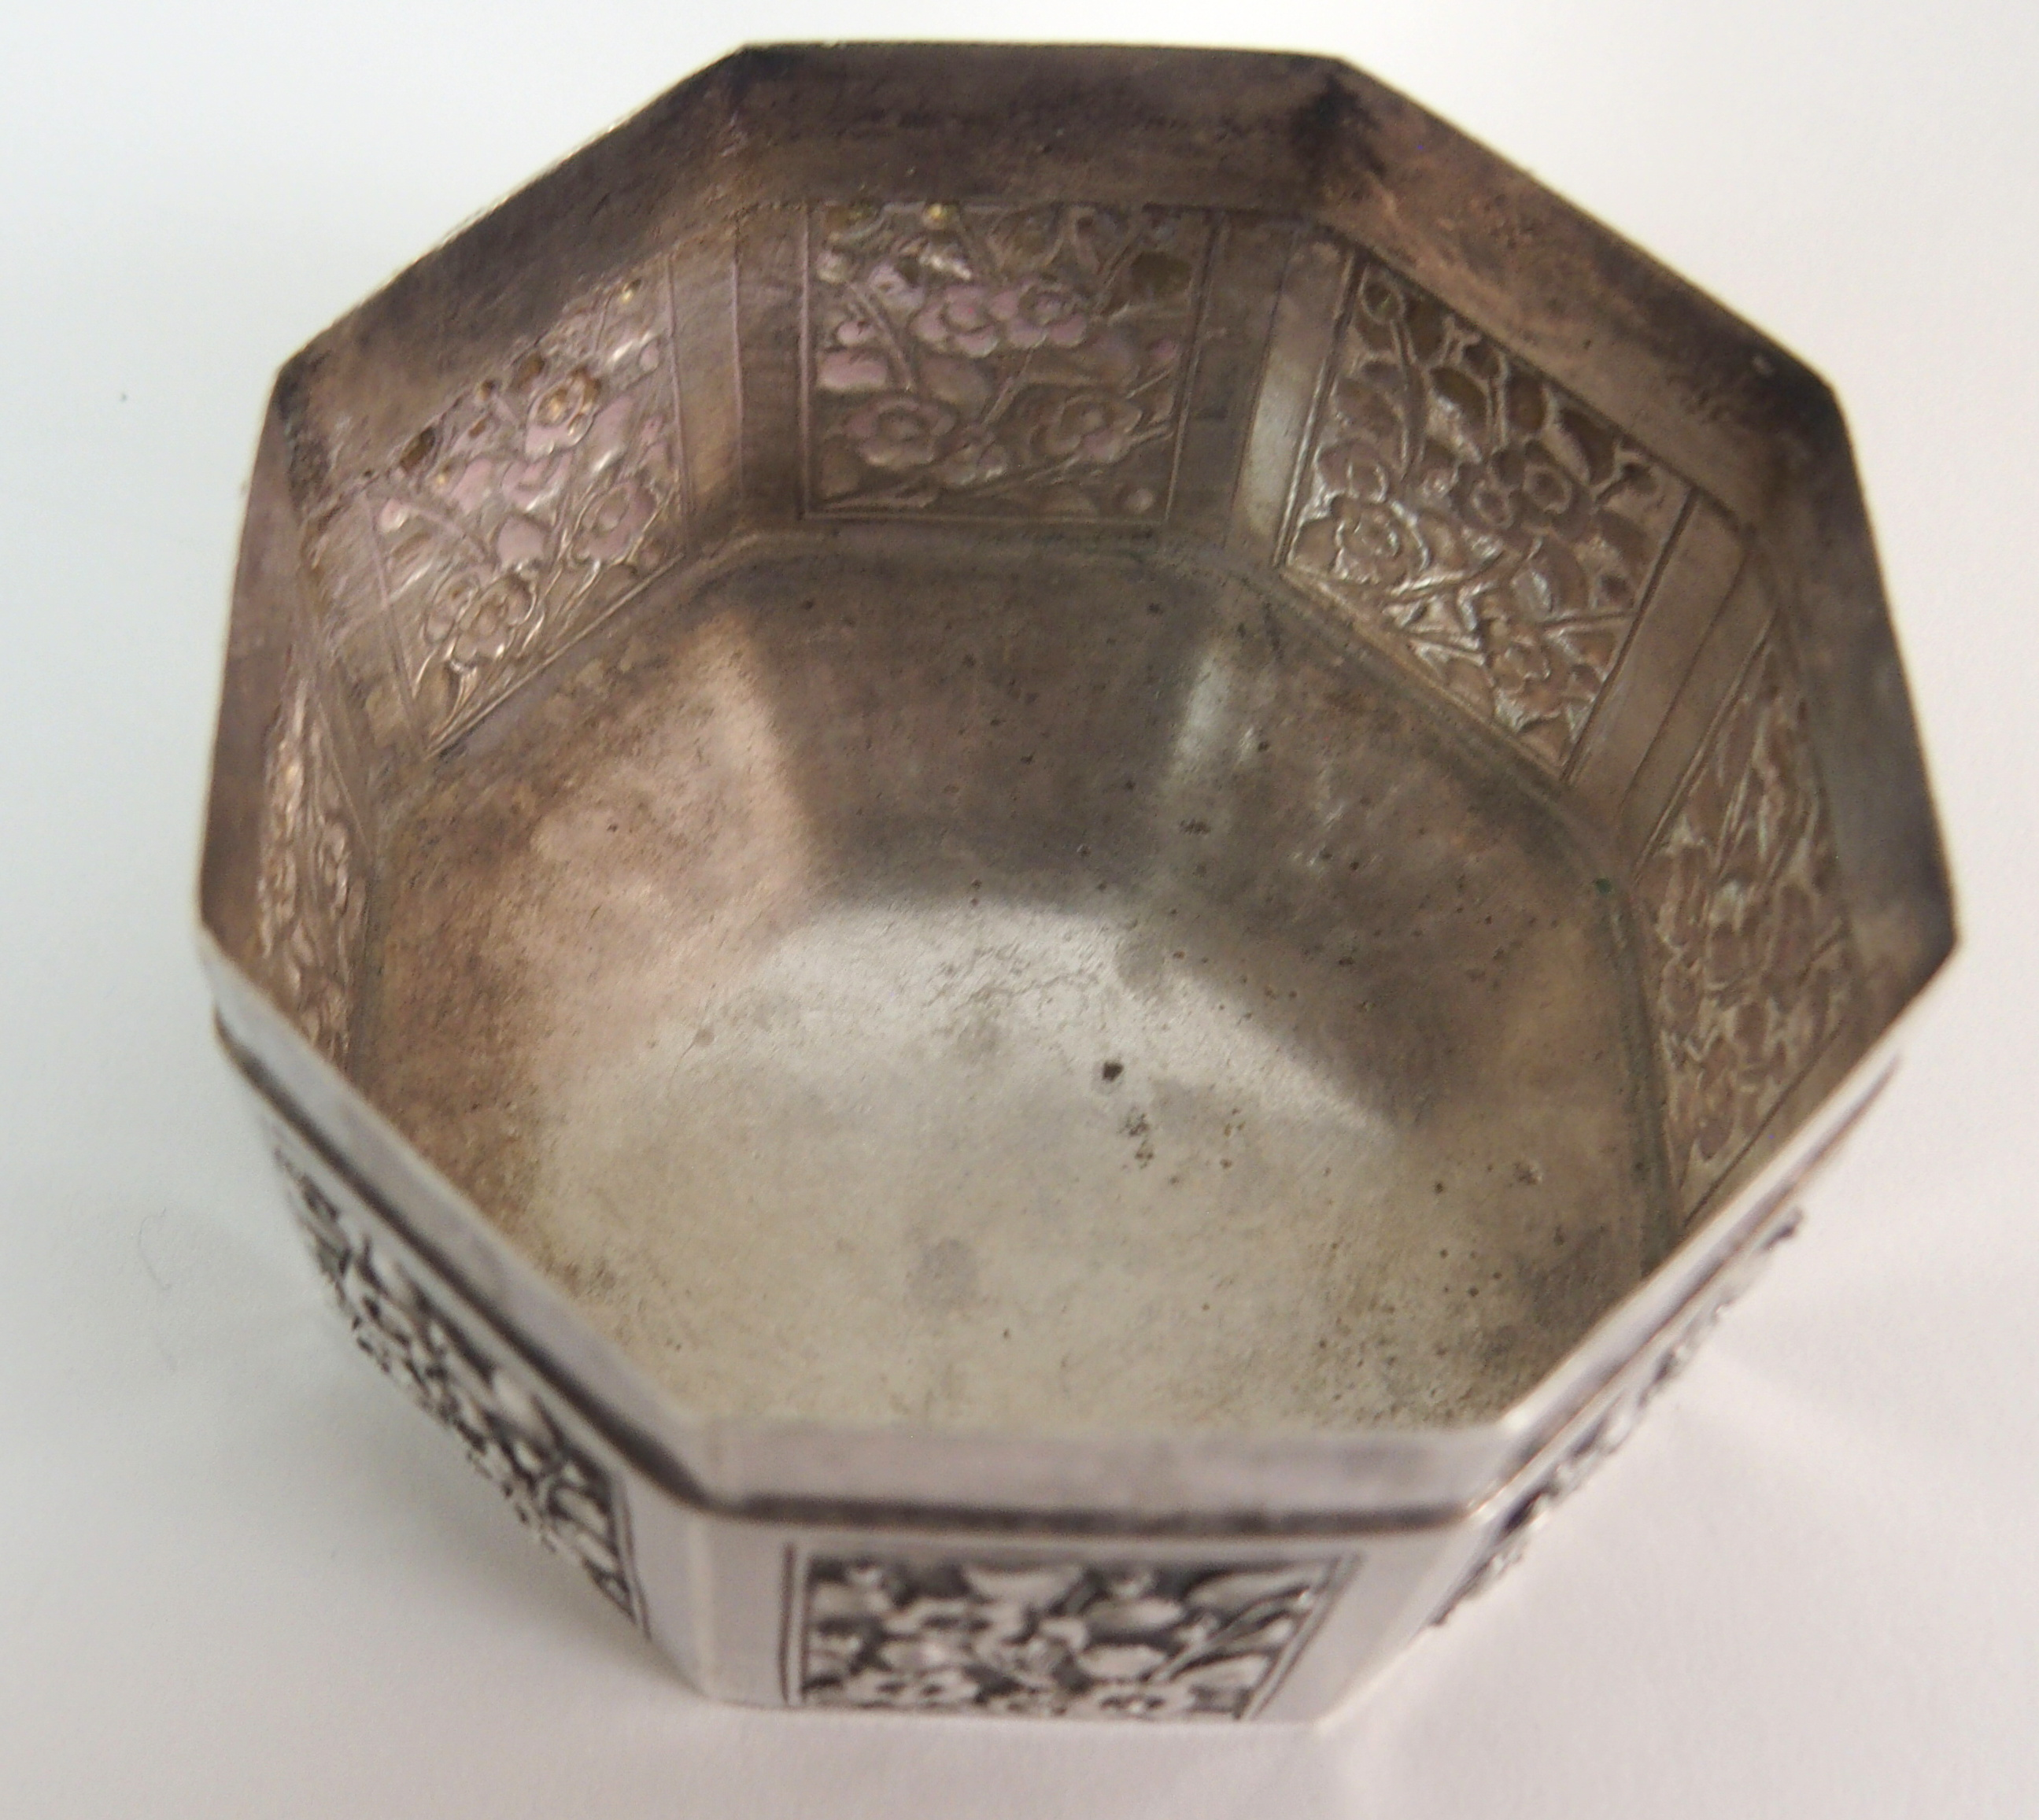 Lot 66 - A SET OF THREE CHINESE SILVER OCTAGONAL BOXES each surrounding the other and decorated with birds